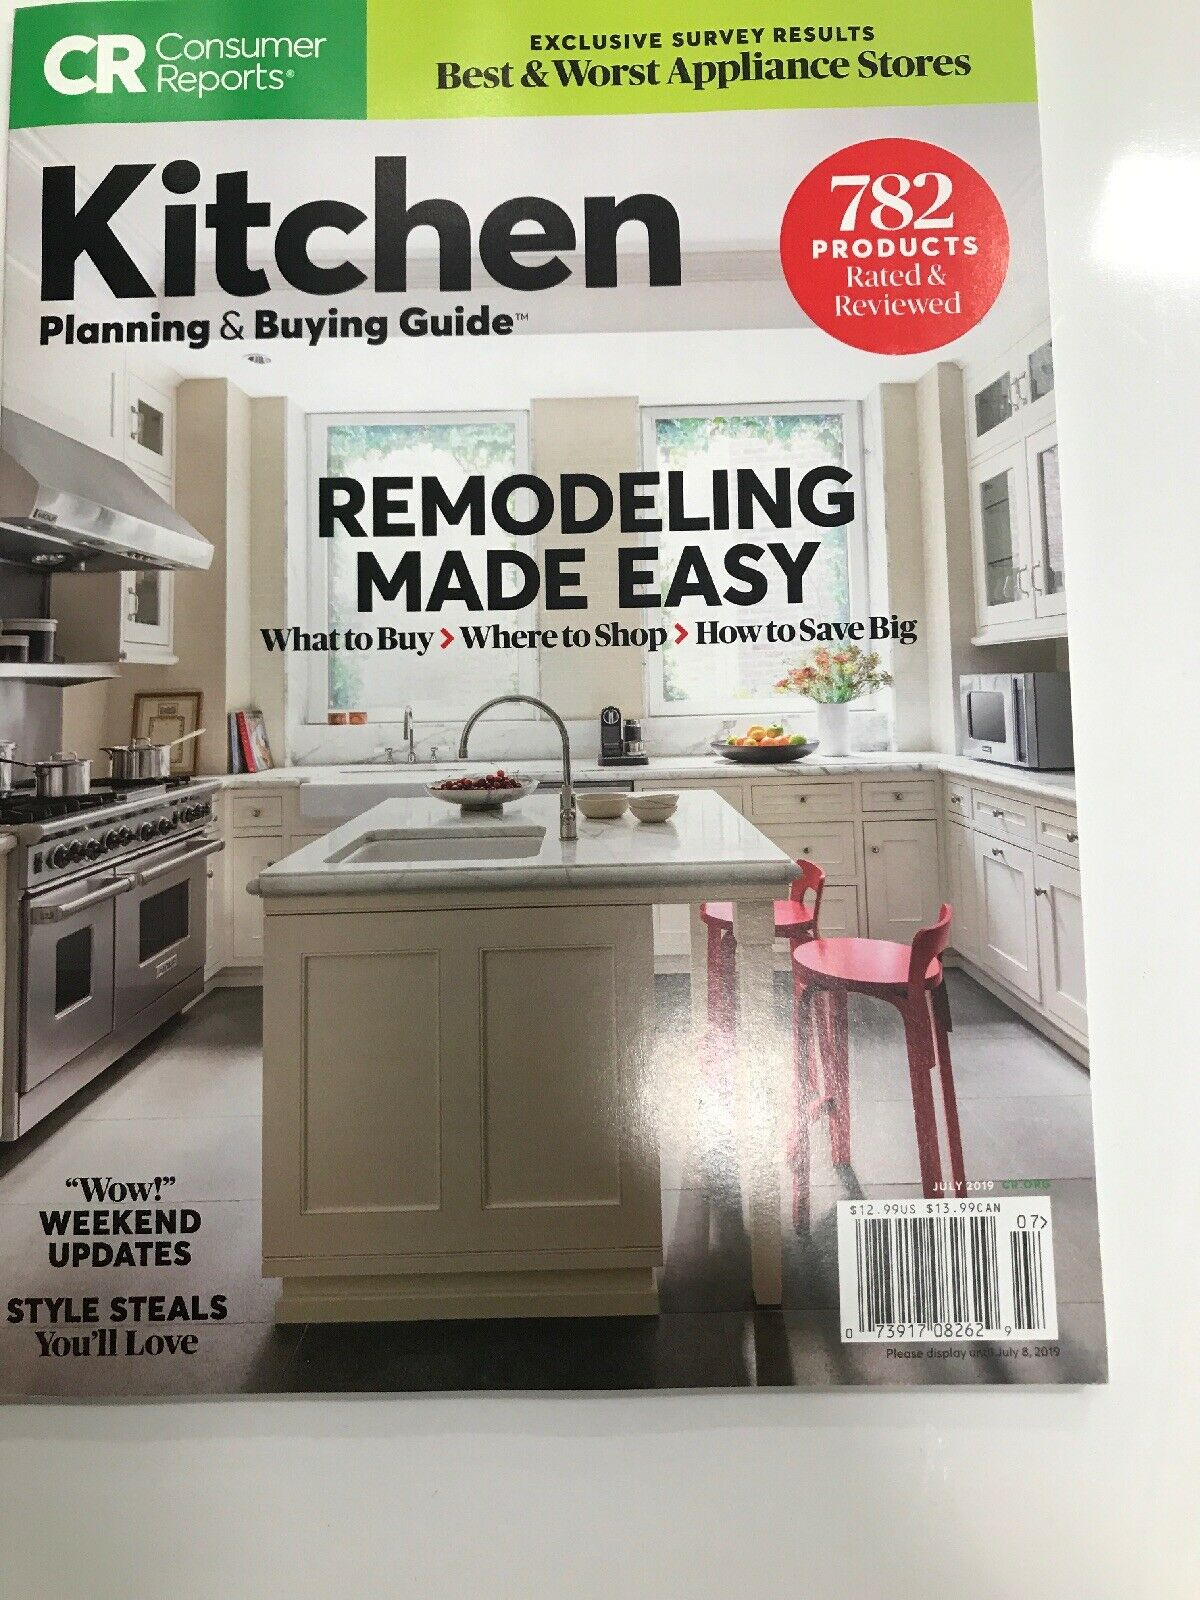 Consumer Reports Magazine July 2019 Remodeling Kitchen Planning and Buying  Guide